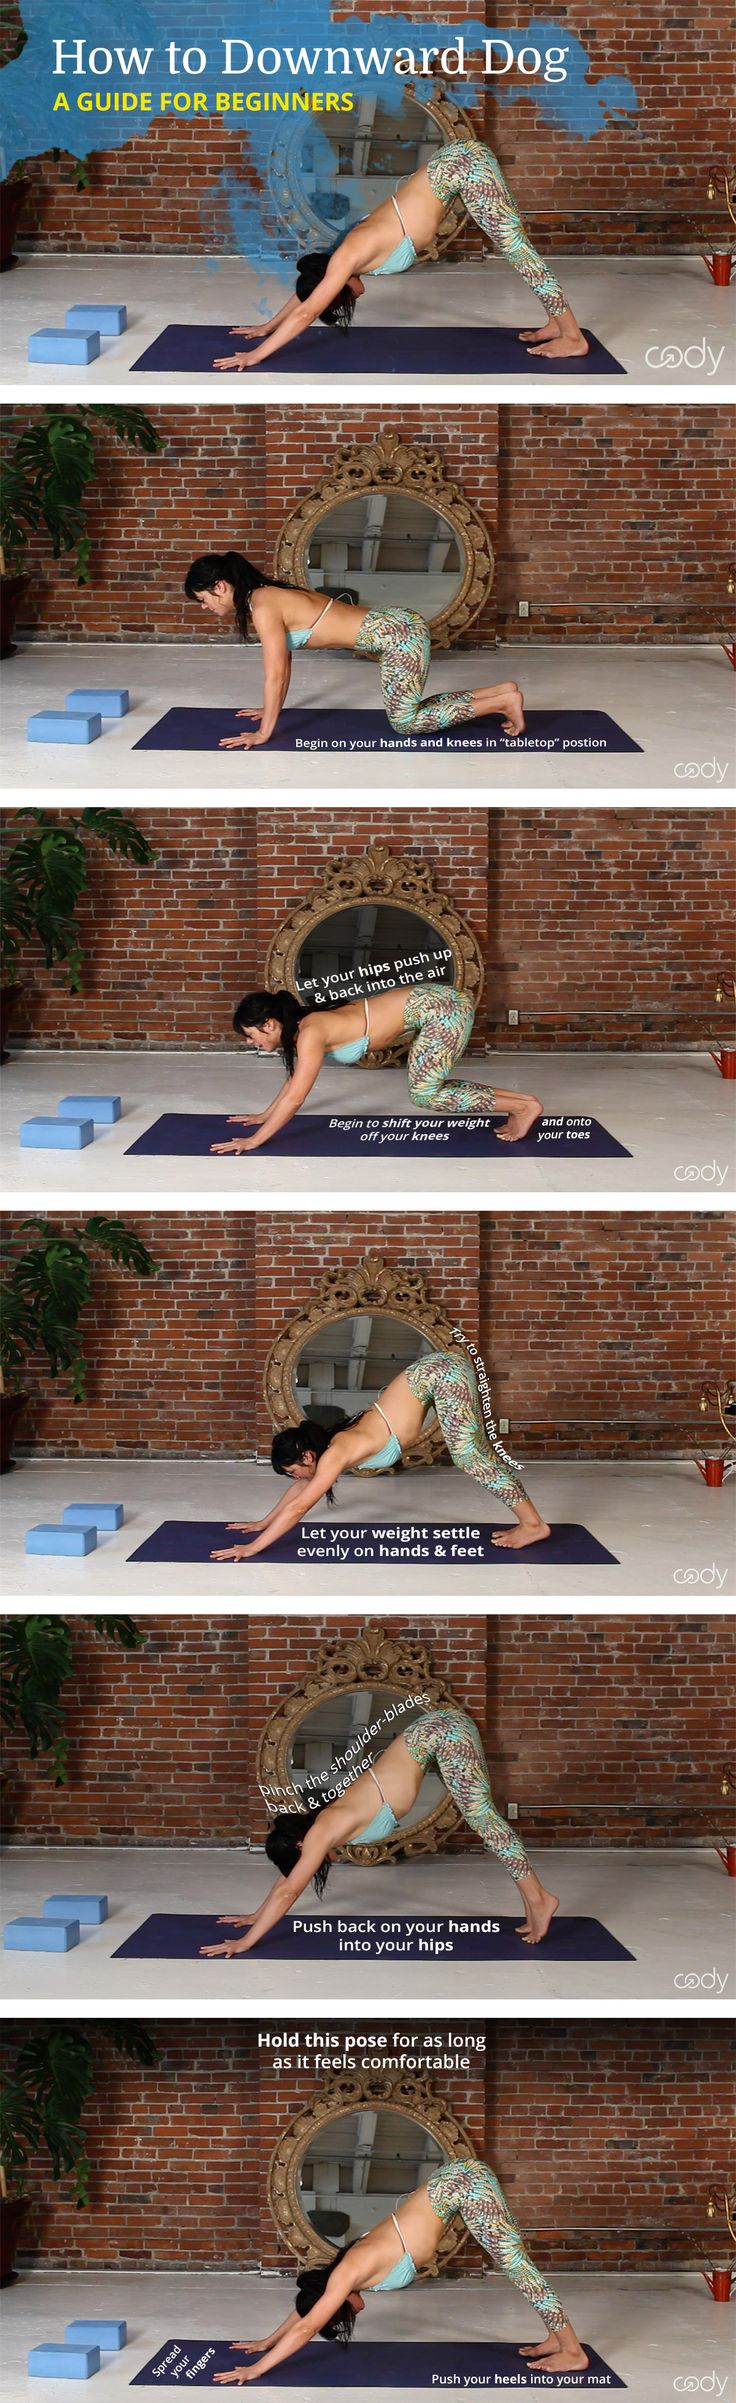 How to Down Dog – or Adho Mukha Svanasana – is the root of Sun Salutations as it is a strengthening, lengthening and restorative yoga pose that offers many benefits. No matter the sport – yoga, weight lifting, running, or cycling – downward dog is a great